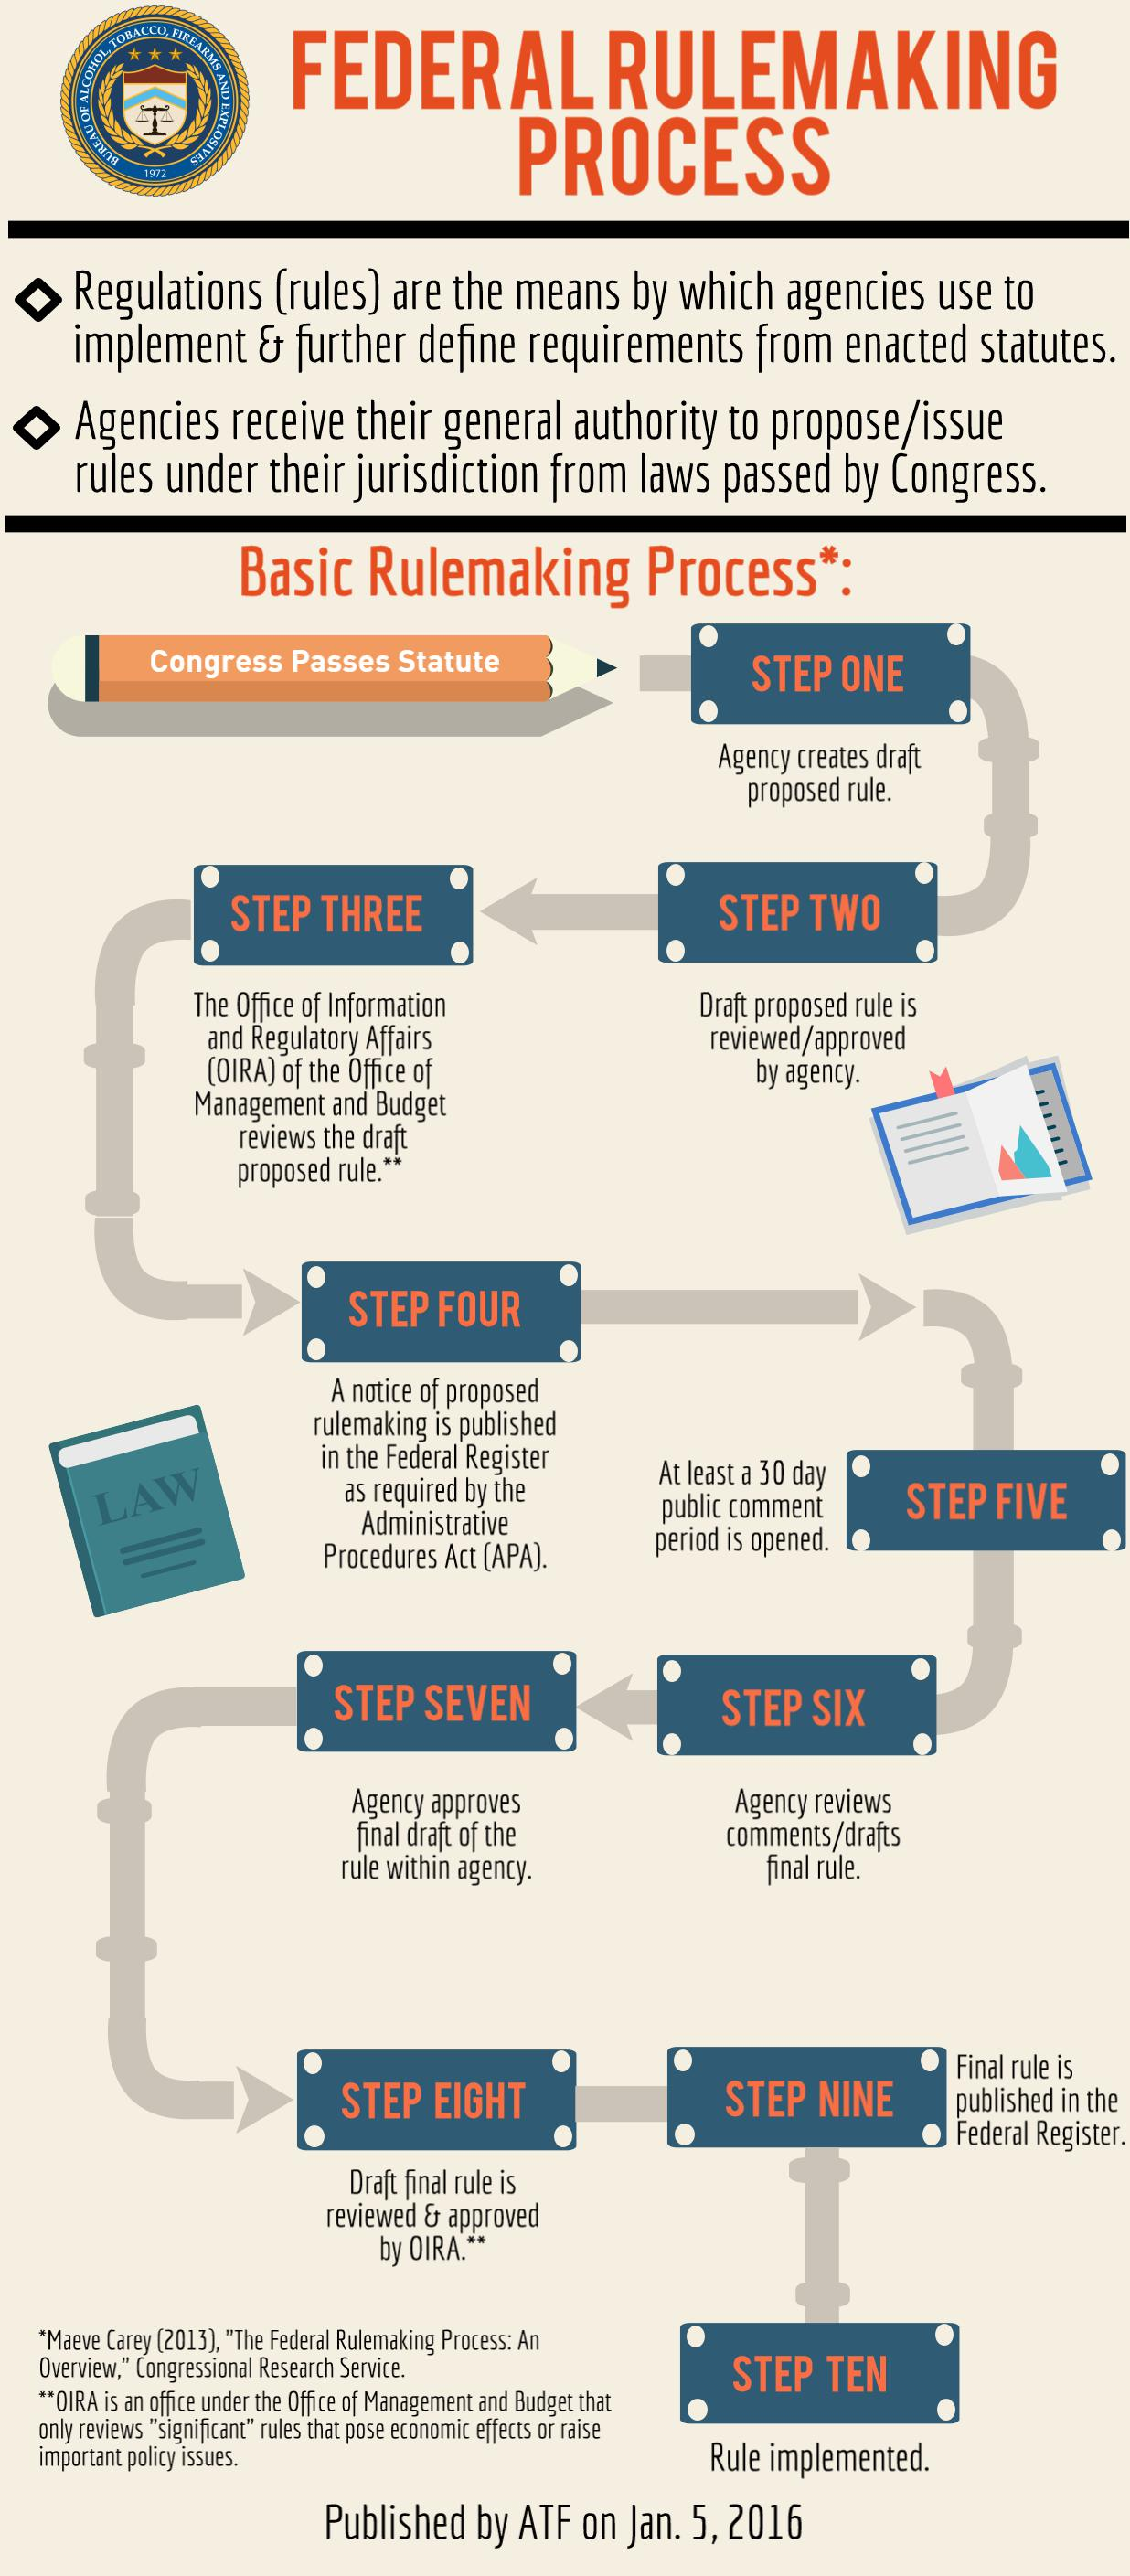 A chart depicts the 10 steps of the federal rulemaking process.